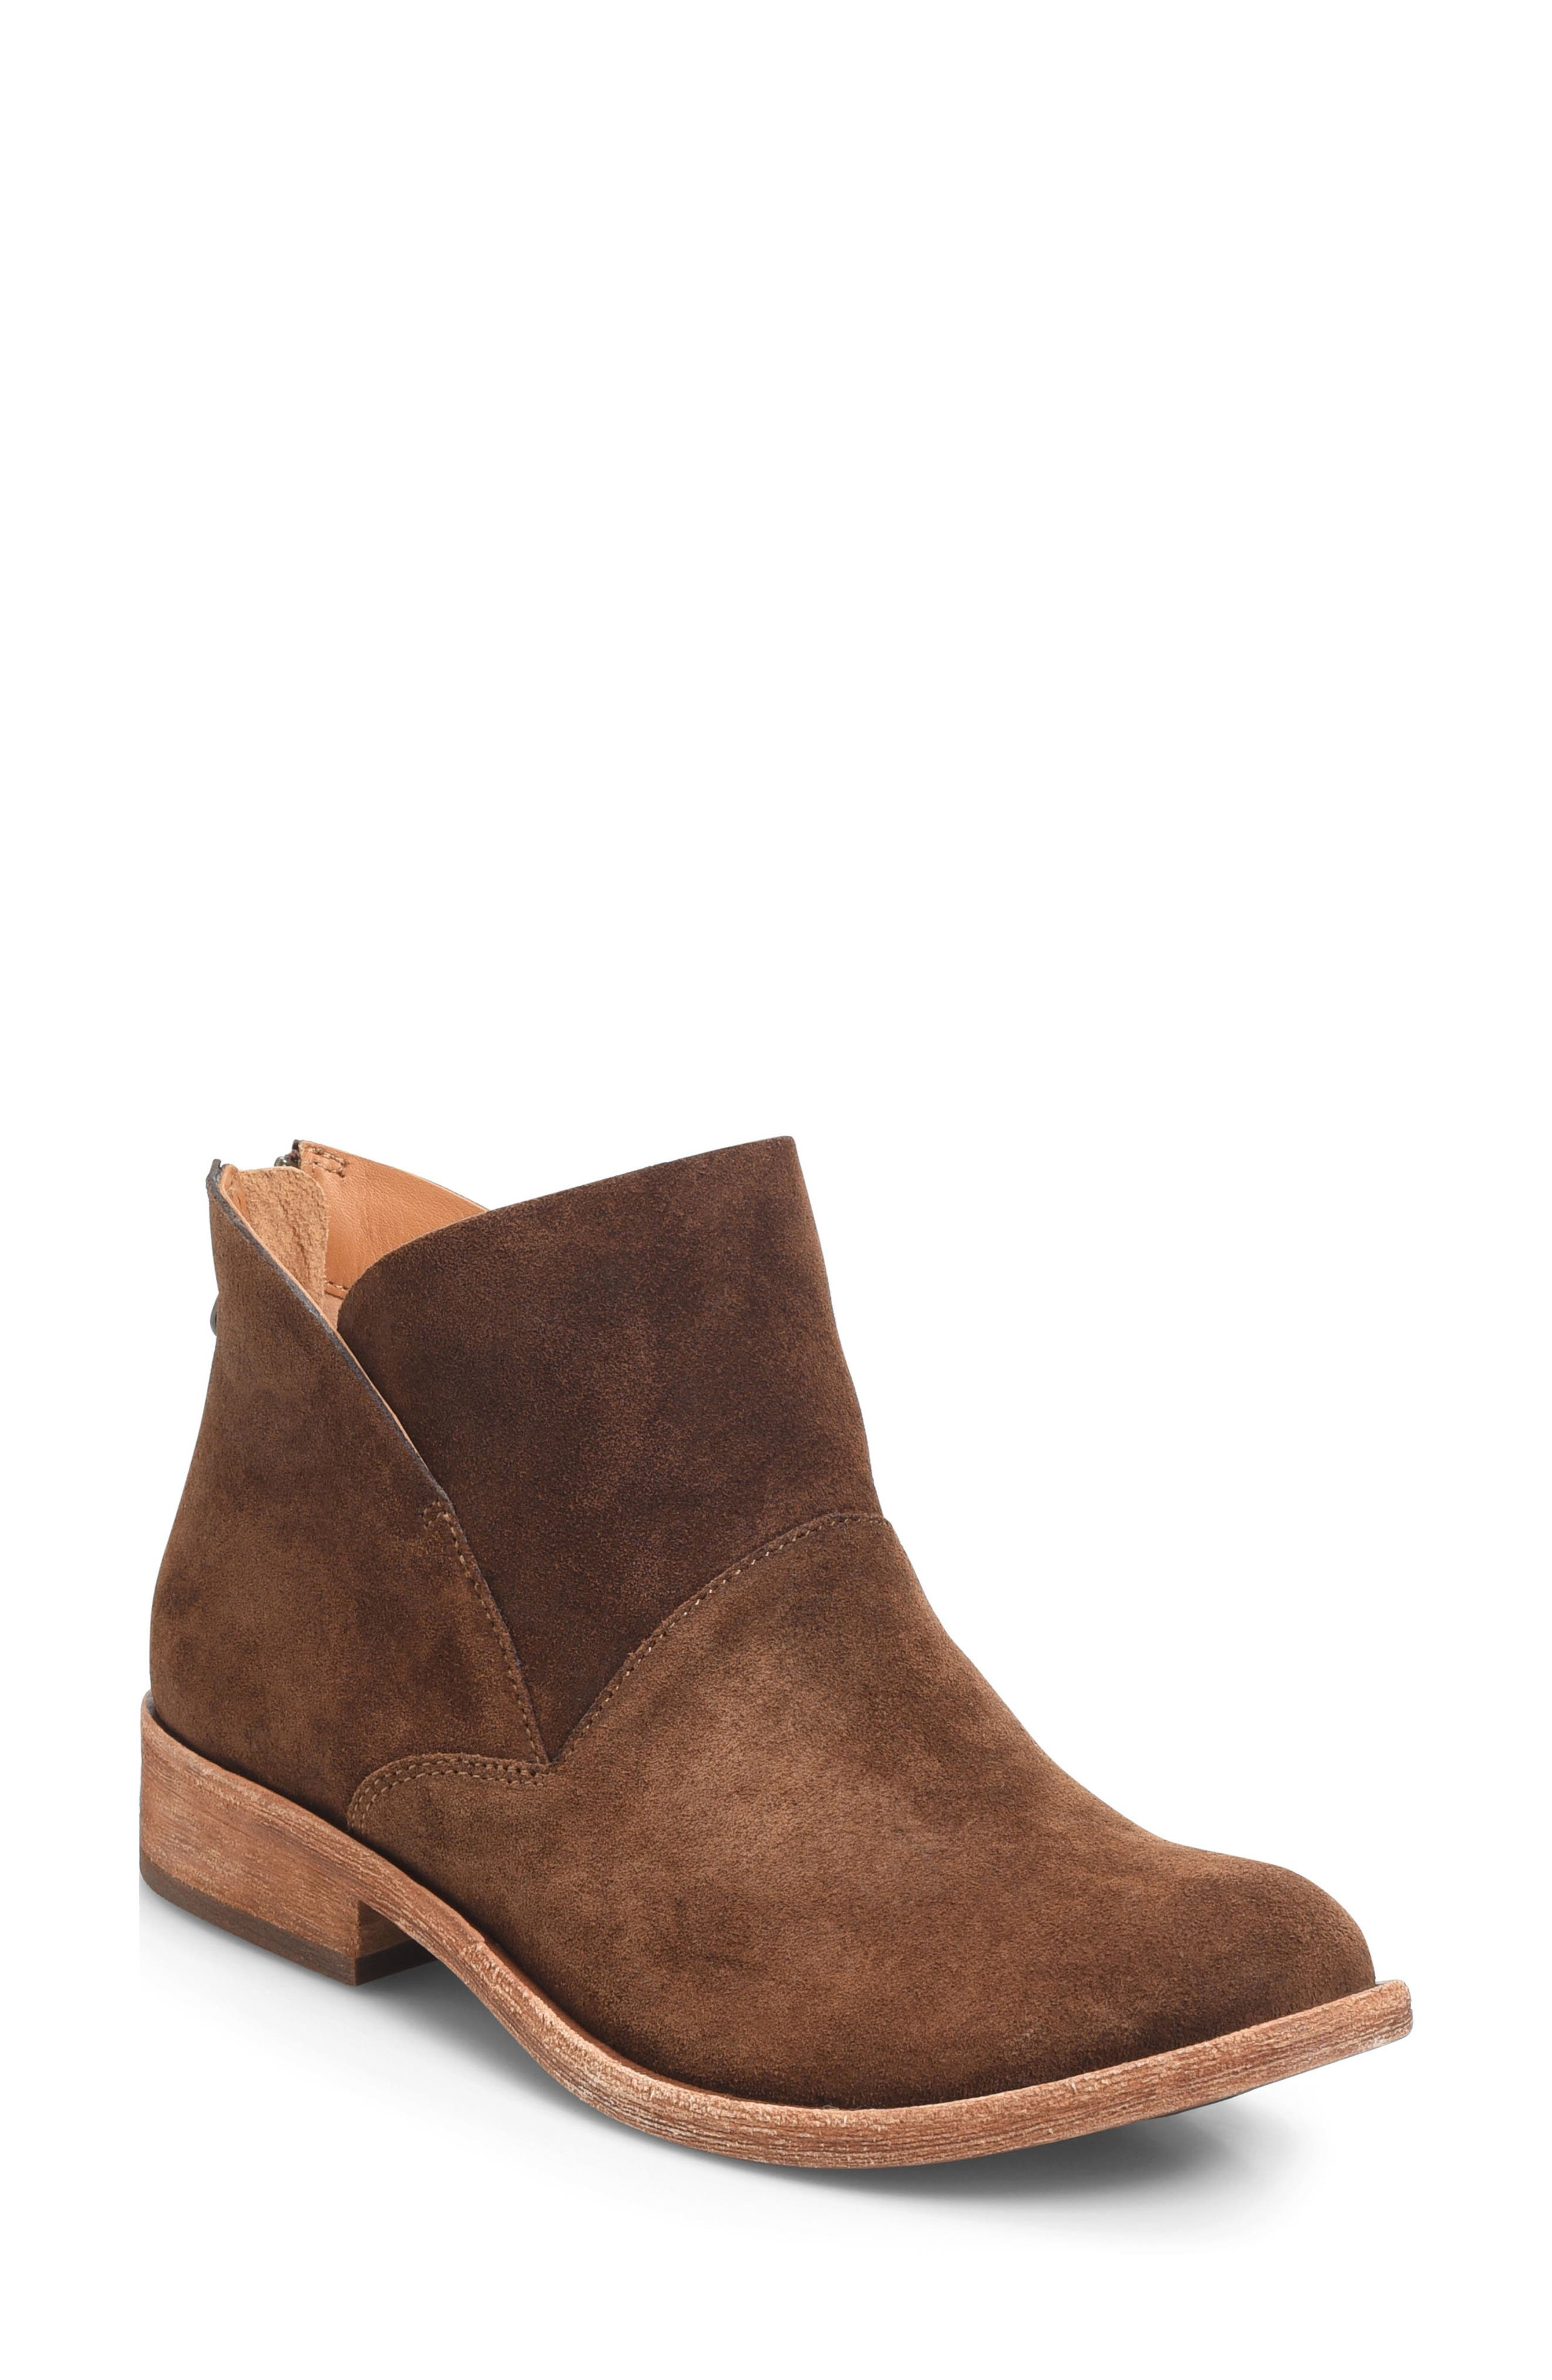 Ryder Ankle Boot,                             Main thumbnail 1, color,                             Rust Suede